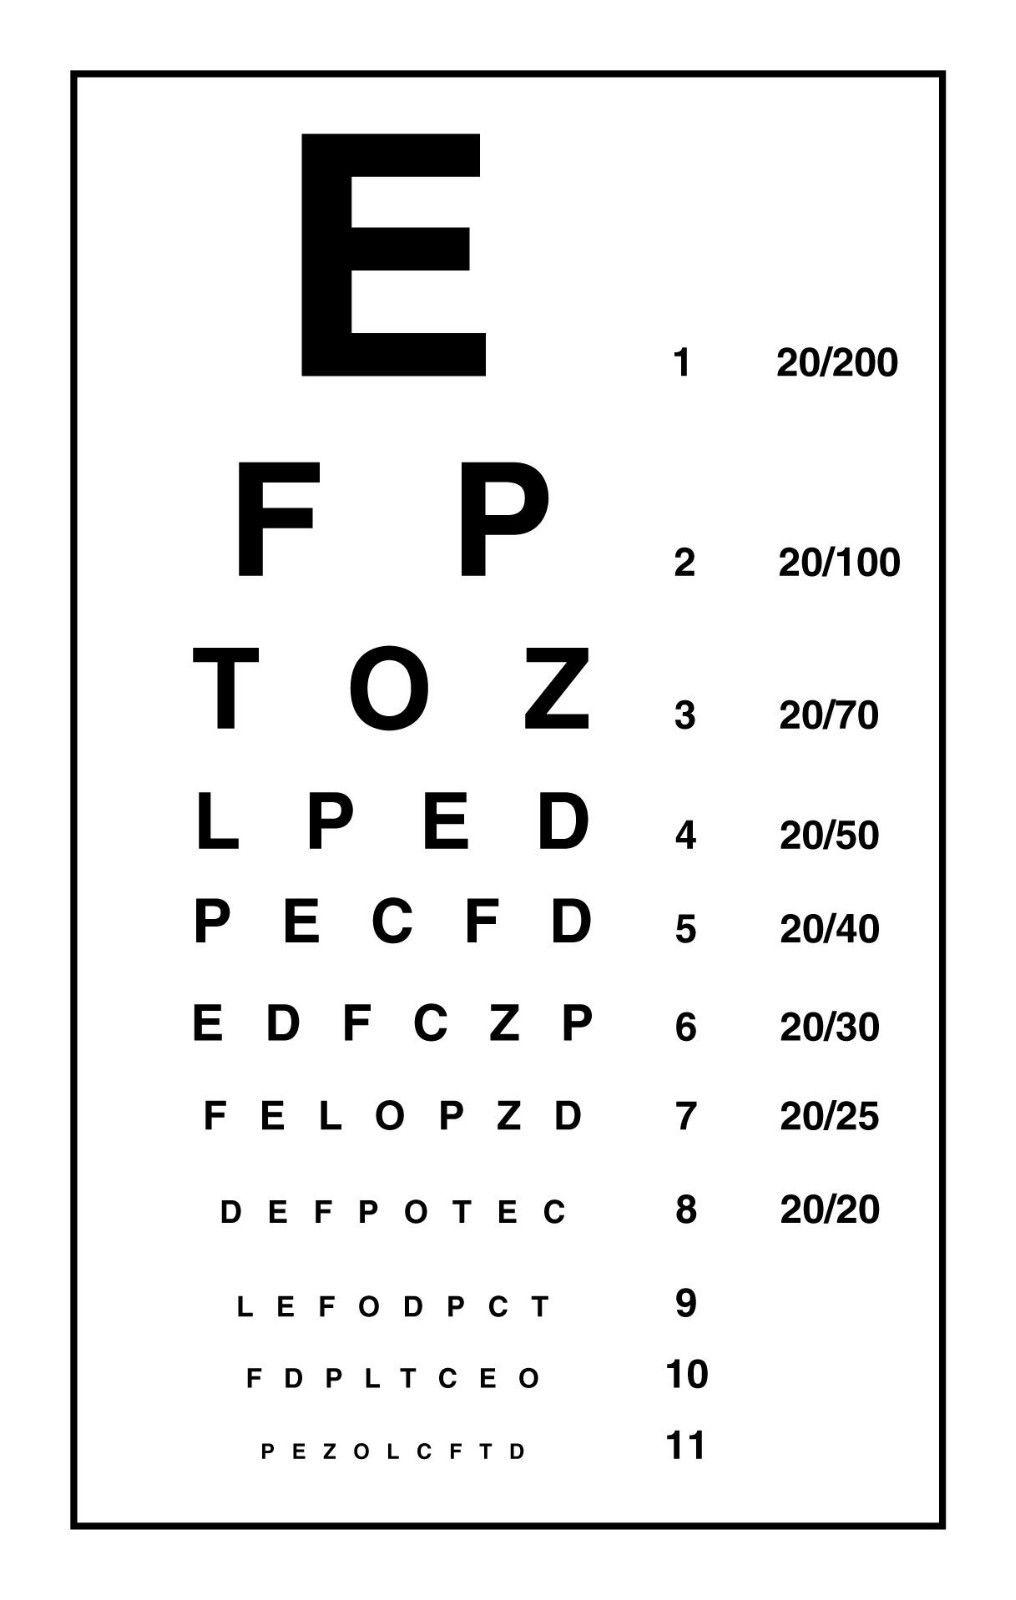 photo relating to Eye Chart Printable referred to as Framed Print - Progressive Eye Chart Artwork Silk Print Poster 24x36inch(60x90cm) 016